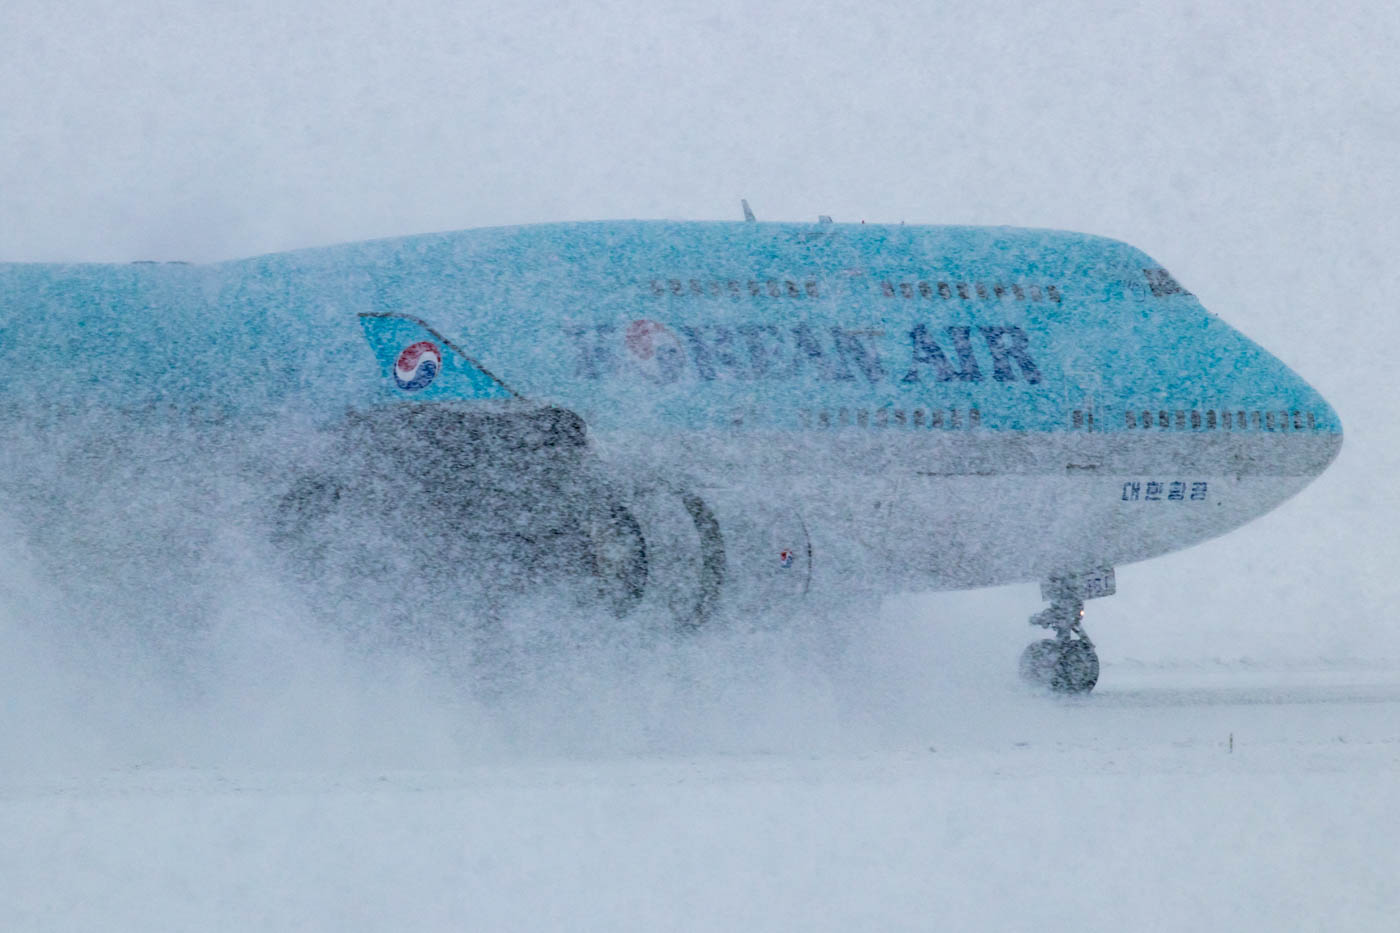 Korean Air 747 Arriving at Sapporo Airport